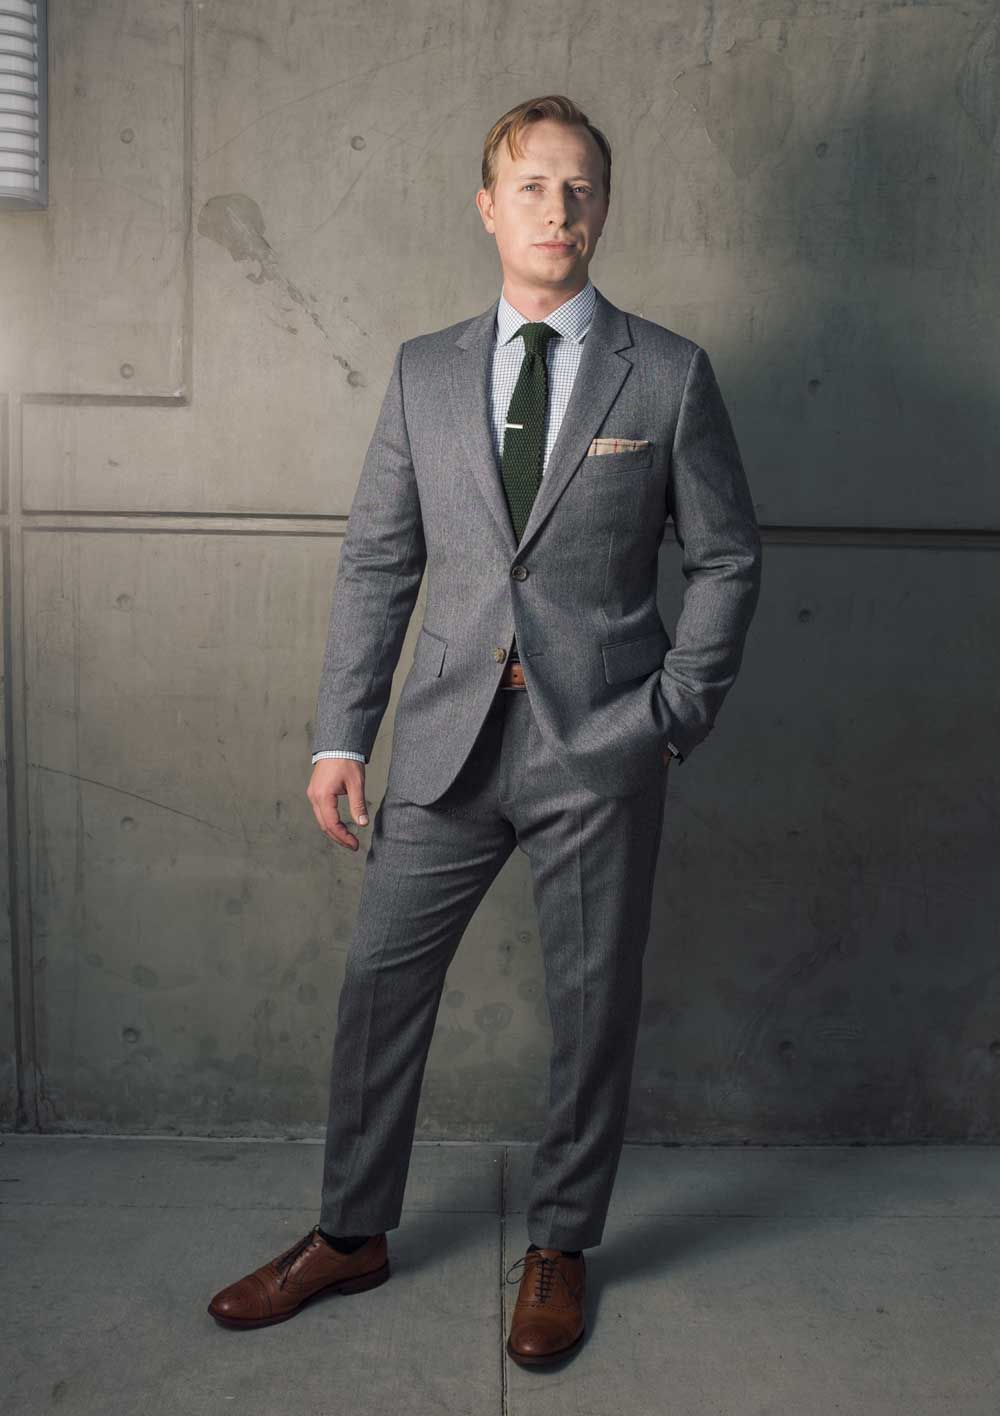 50 Ways To Wear A Grey Suit forecasting